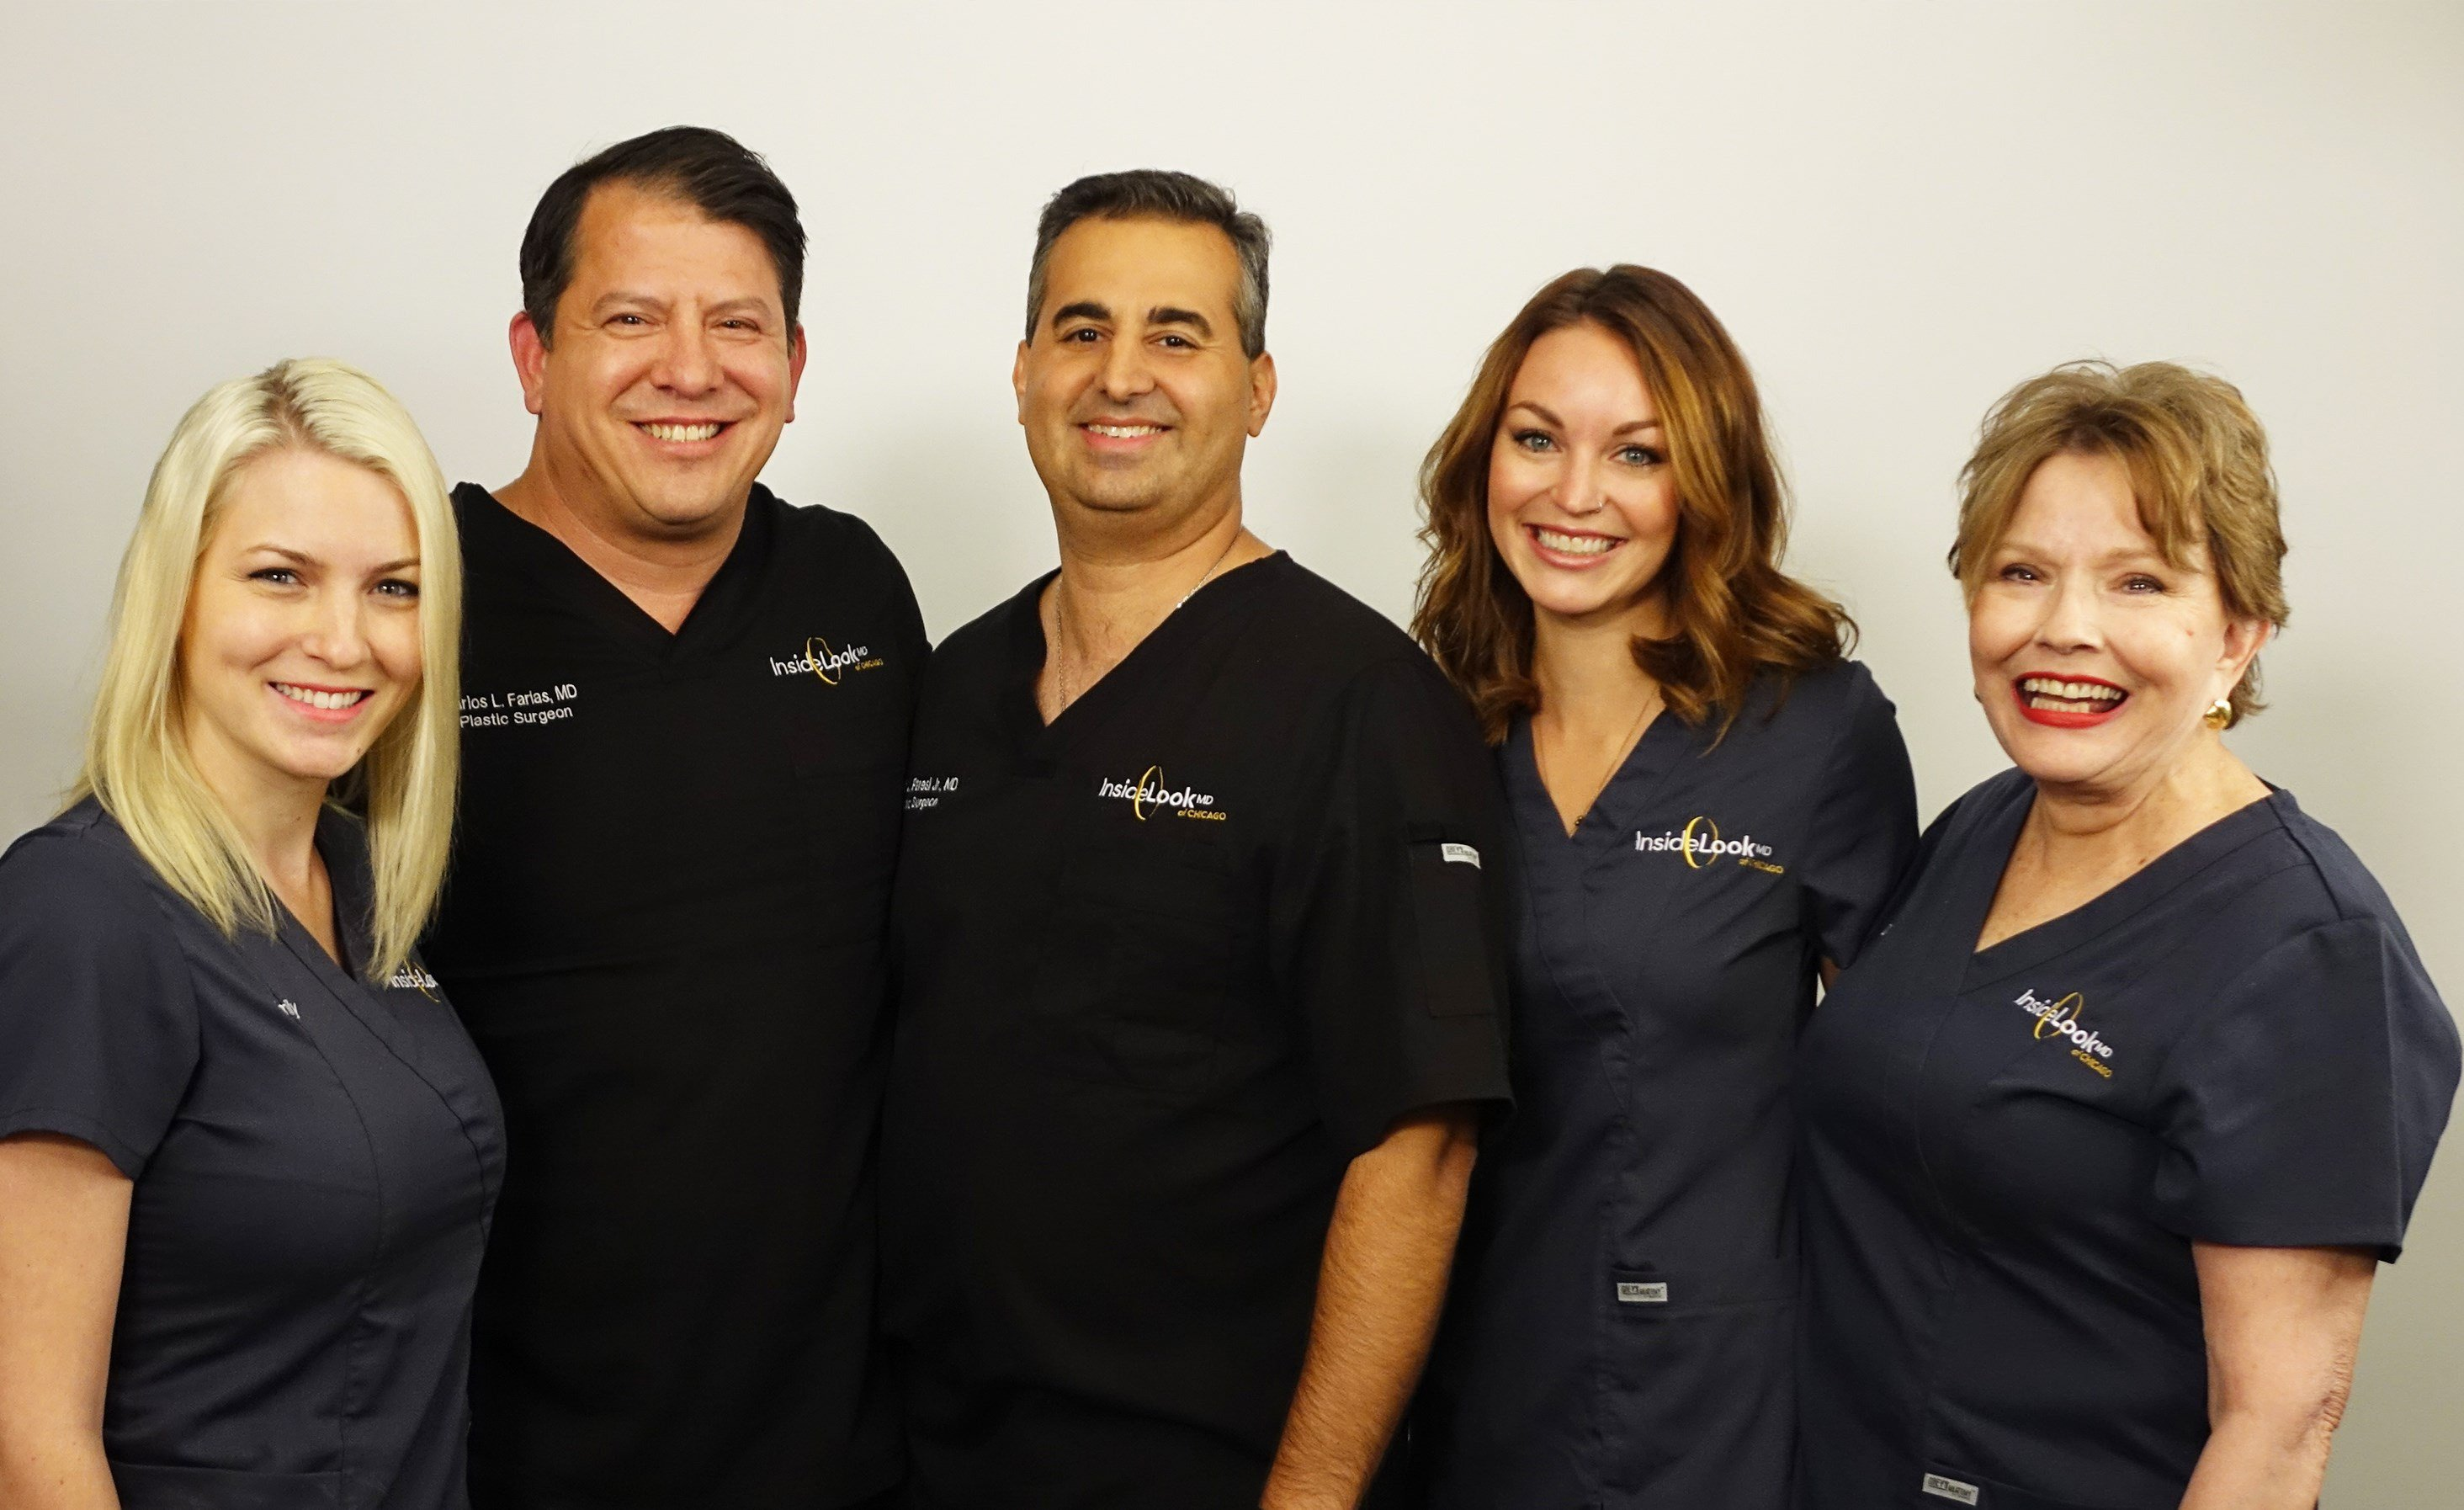 Plastic Surgeon in IL Downers Grove 60515 InsideLookMD 3050 Finley Road Suite 300B  (312)561-3550